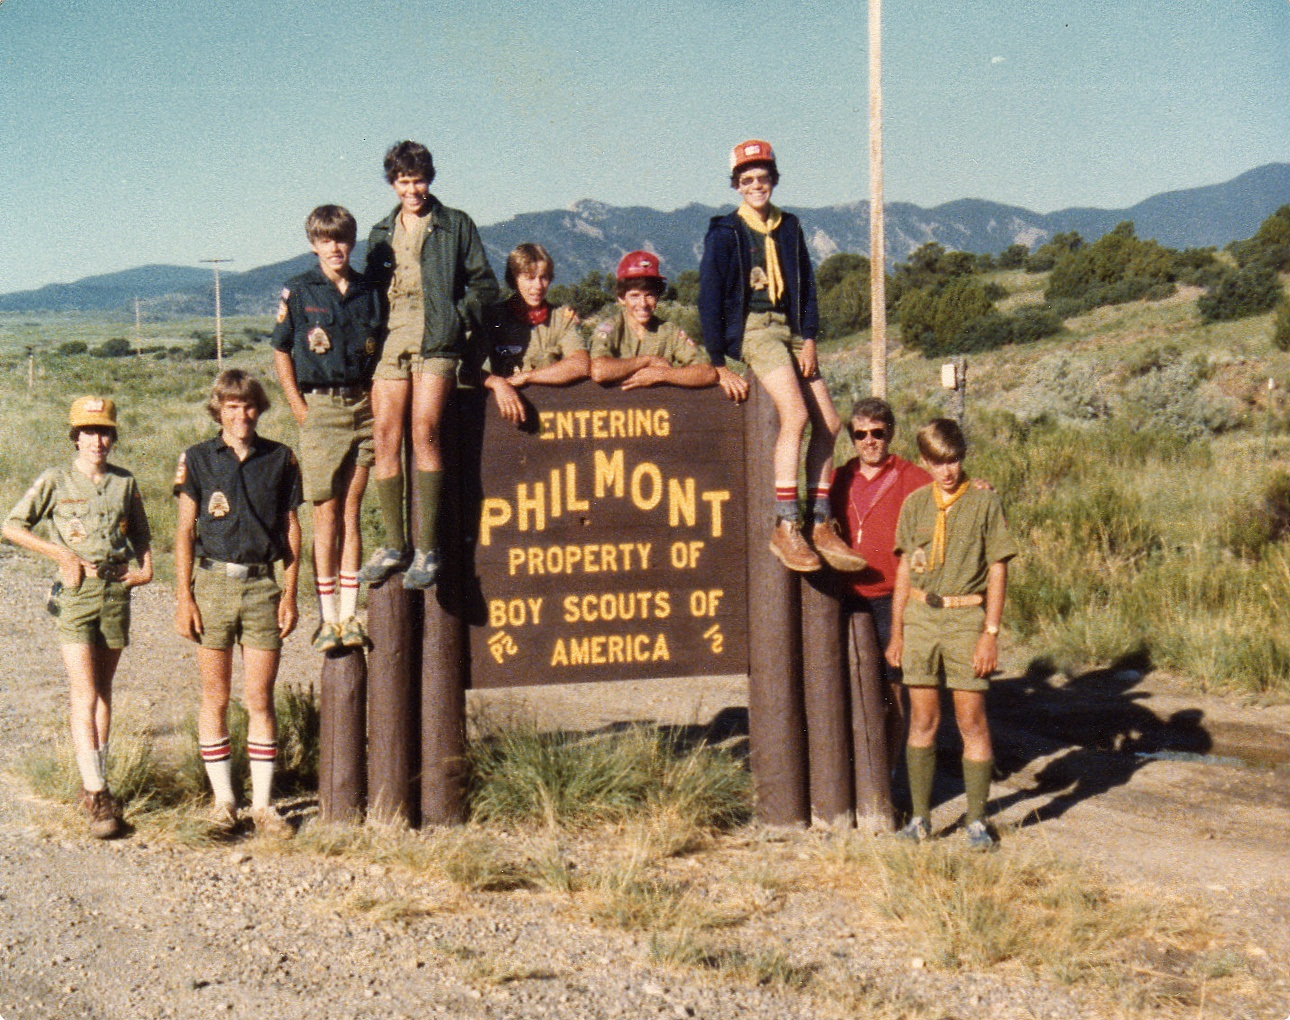 philmont single personals Philmont ranger song i want to go  beware ofcrossing single or weak logs  especially ones  rack, there exists a small archaeological site dating from.